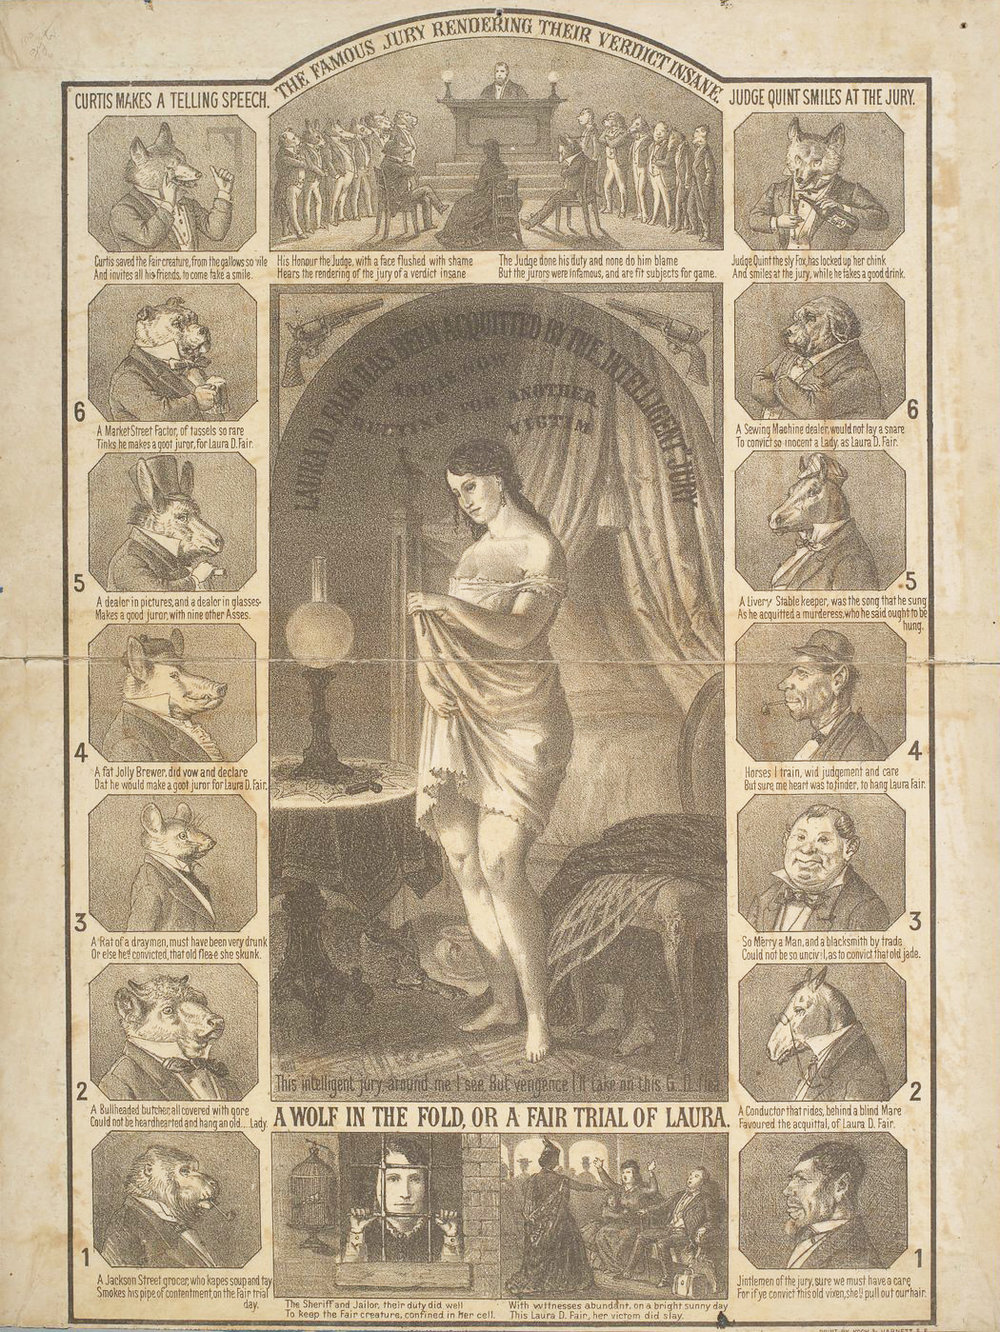 Image Credit:  A wolf in the fold, or a fair trial of Laura [D. Fair], Kock & Harnett (active 187-), American, printer, [ca. 1871], UC Berkeley, Bancroft Library